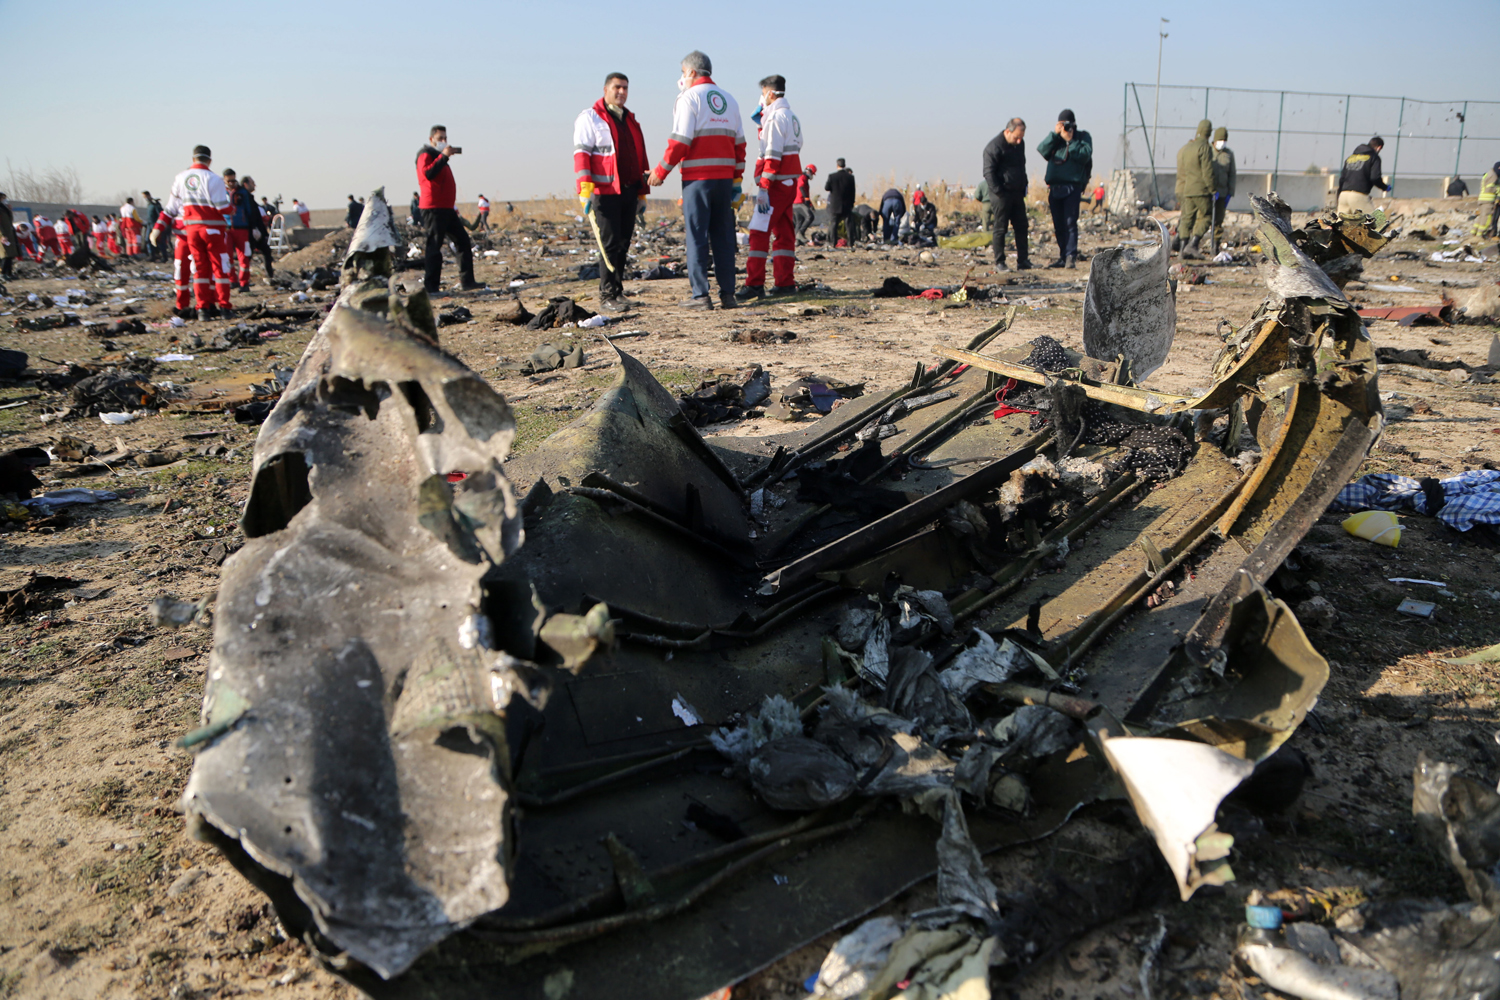 Ukraine International Airlines plane crashes